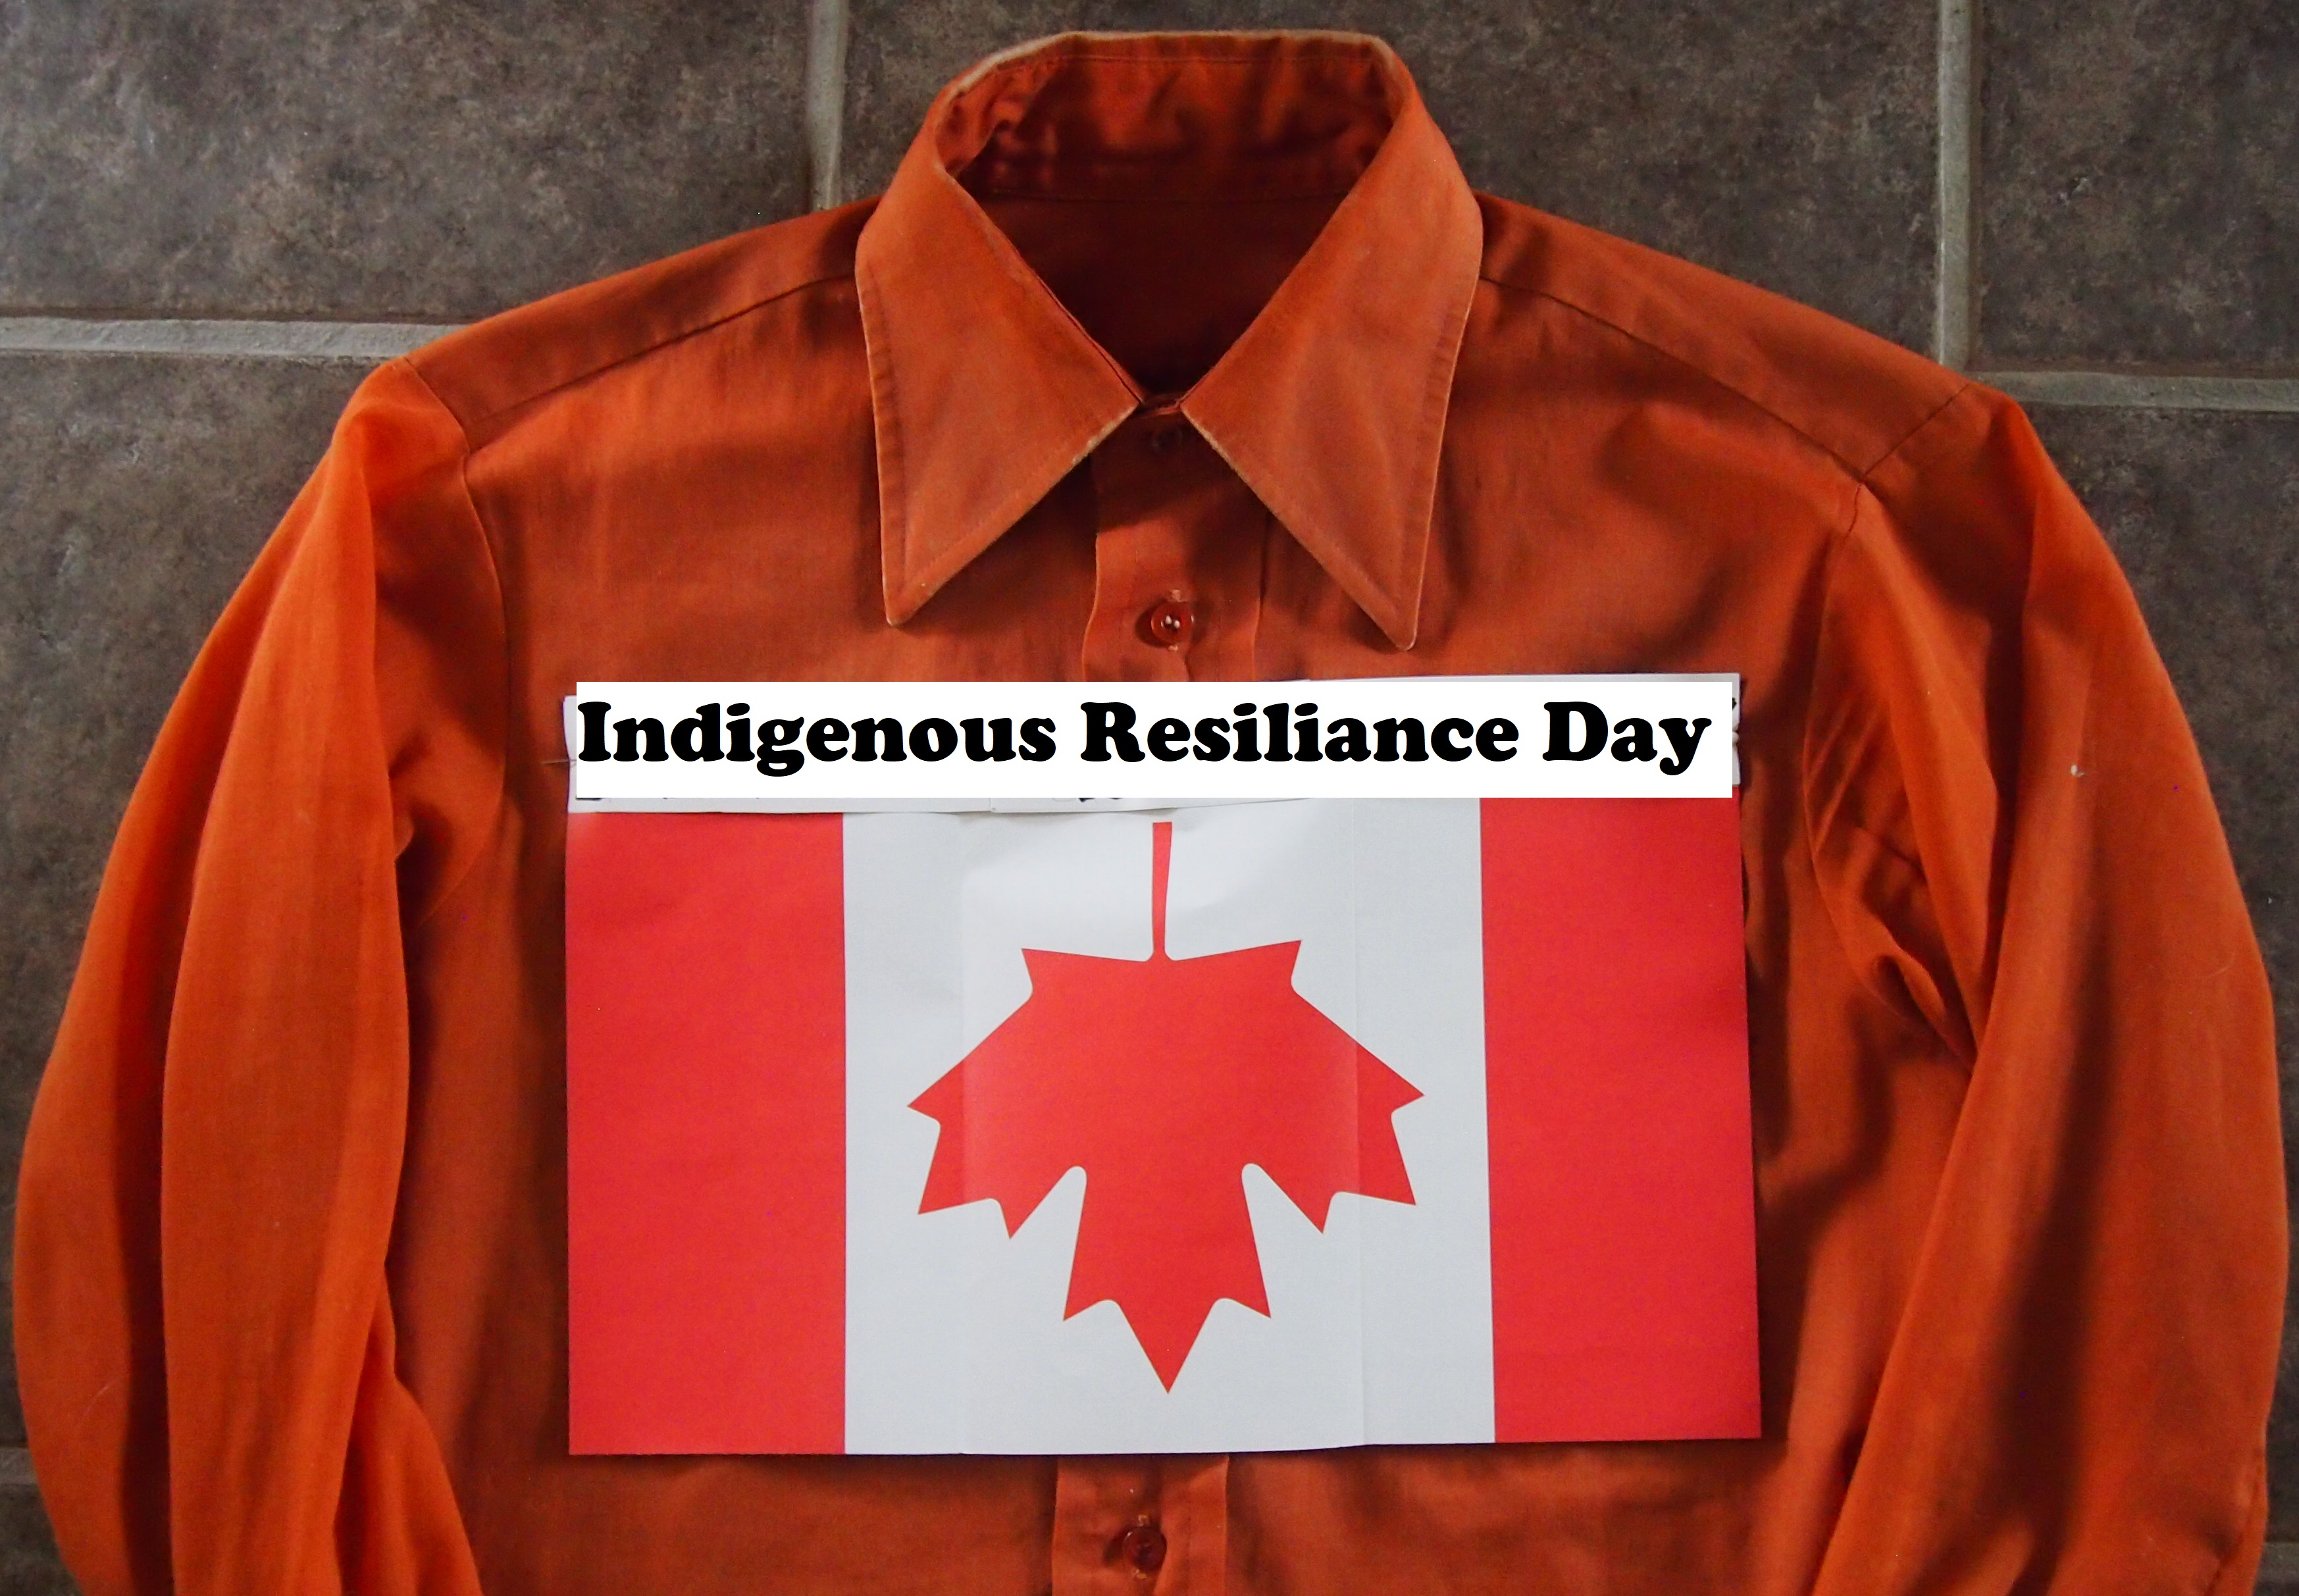 Reconcili-ACTION Role for Museums UPDATE, 1 July 2021: Indigenous Resilience Day